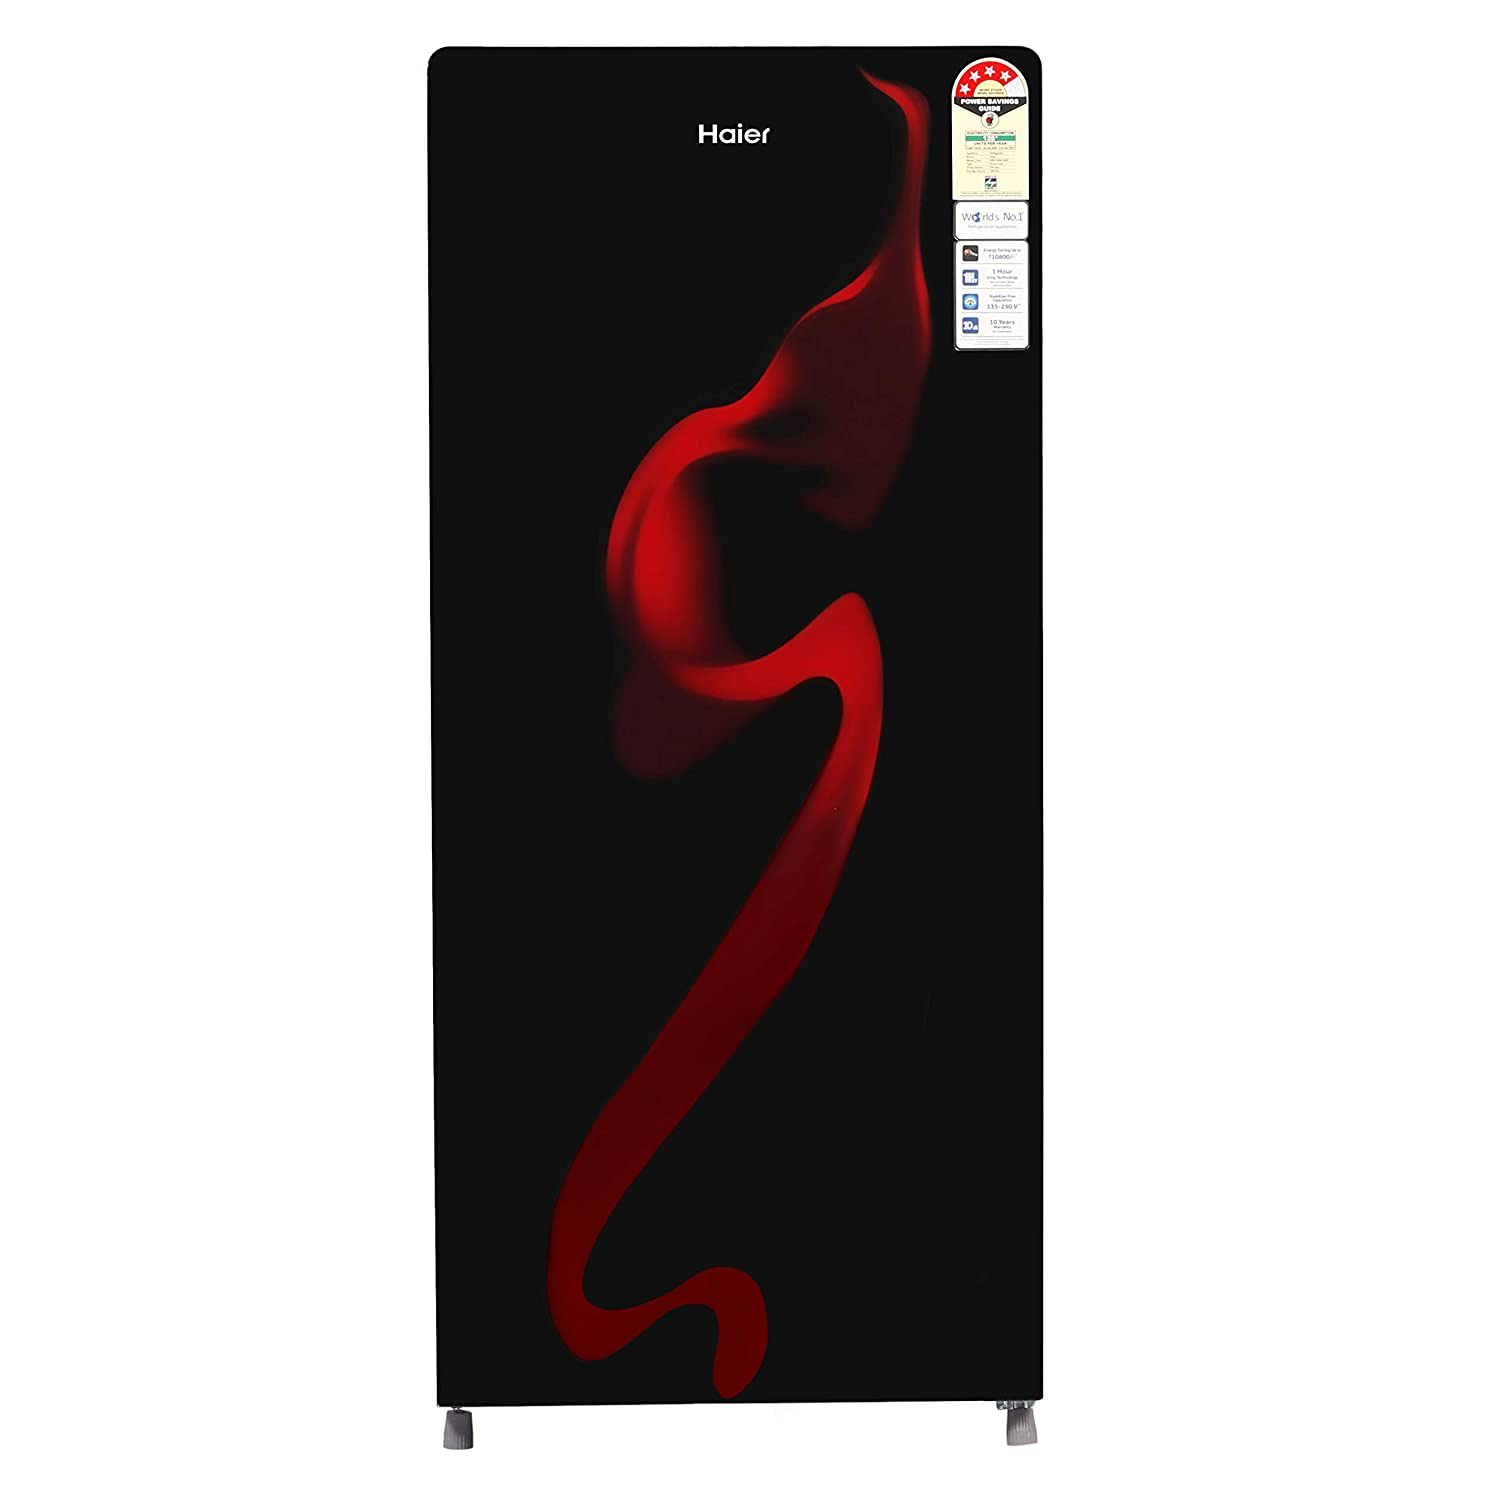 Haier 195 L 4 Star Direct-Cool Single Door Refrigerator